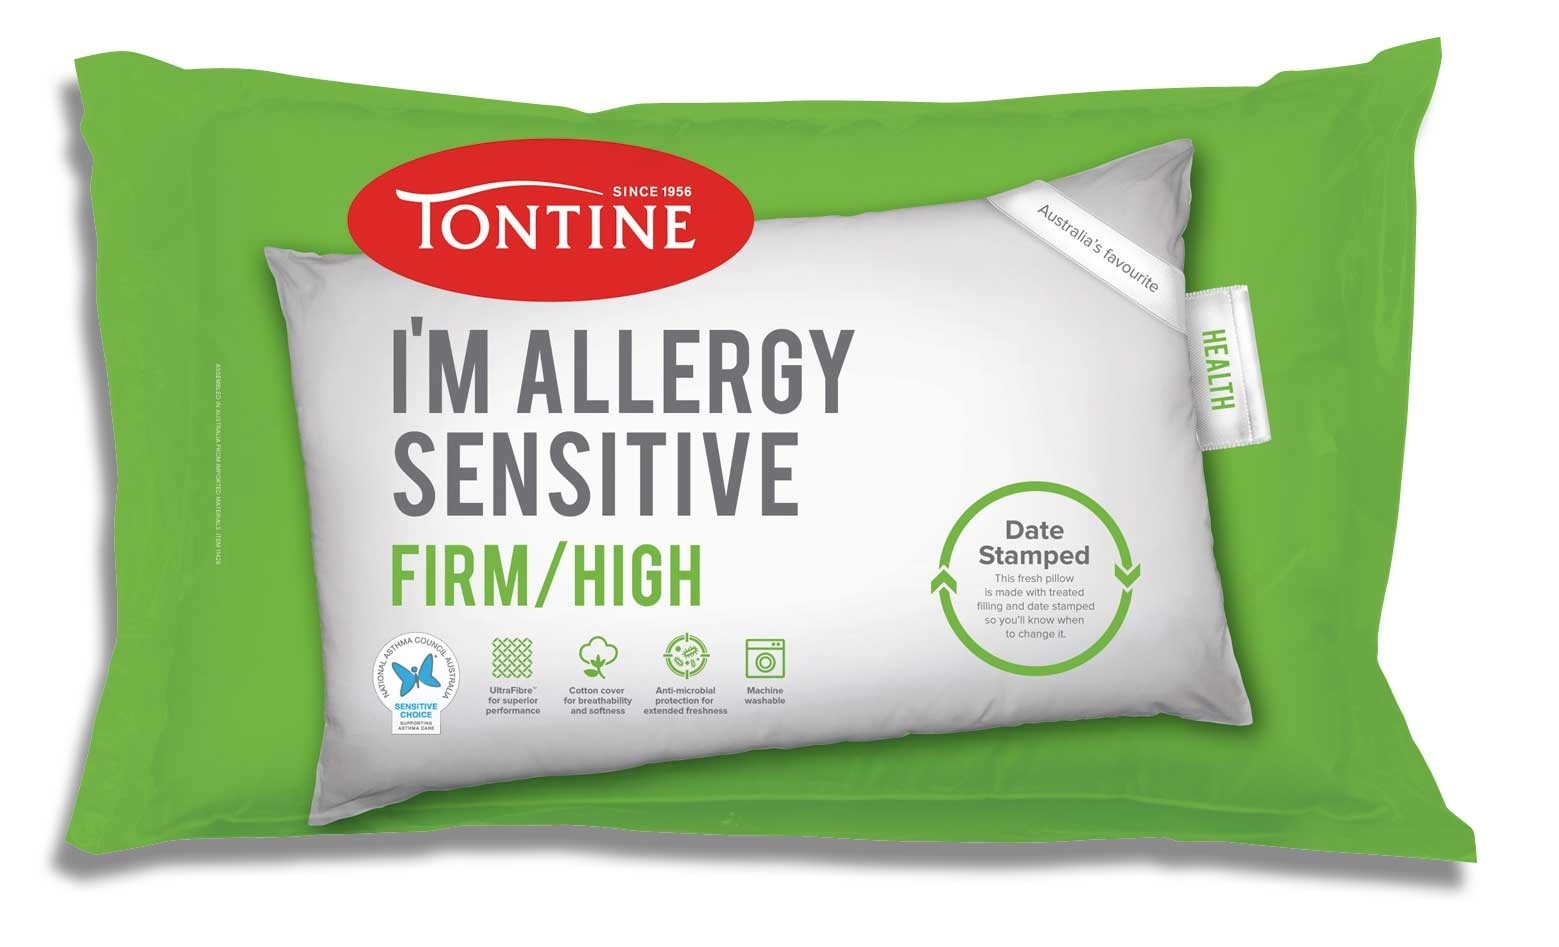 I'm Allergy Sensitive Pillow Firm by Tontine